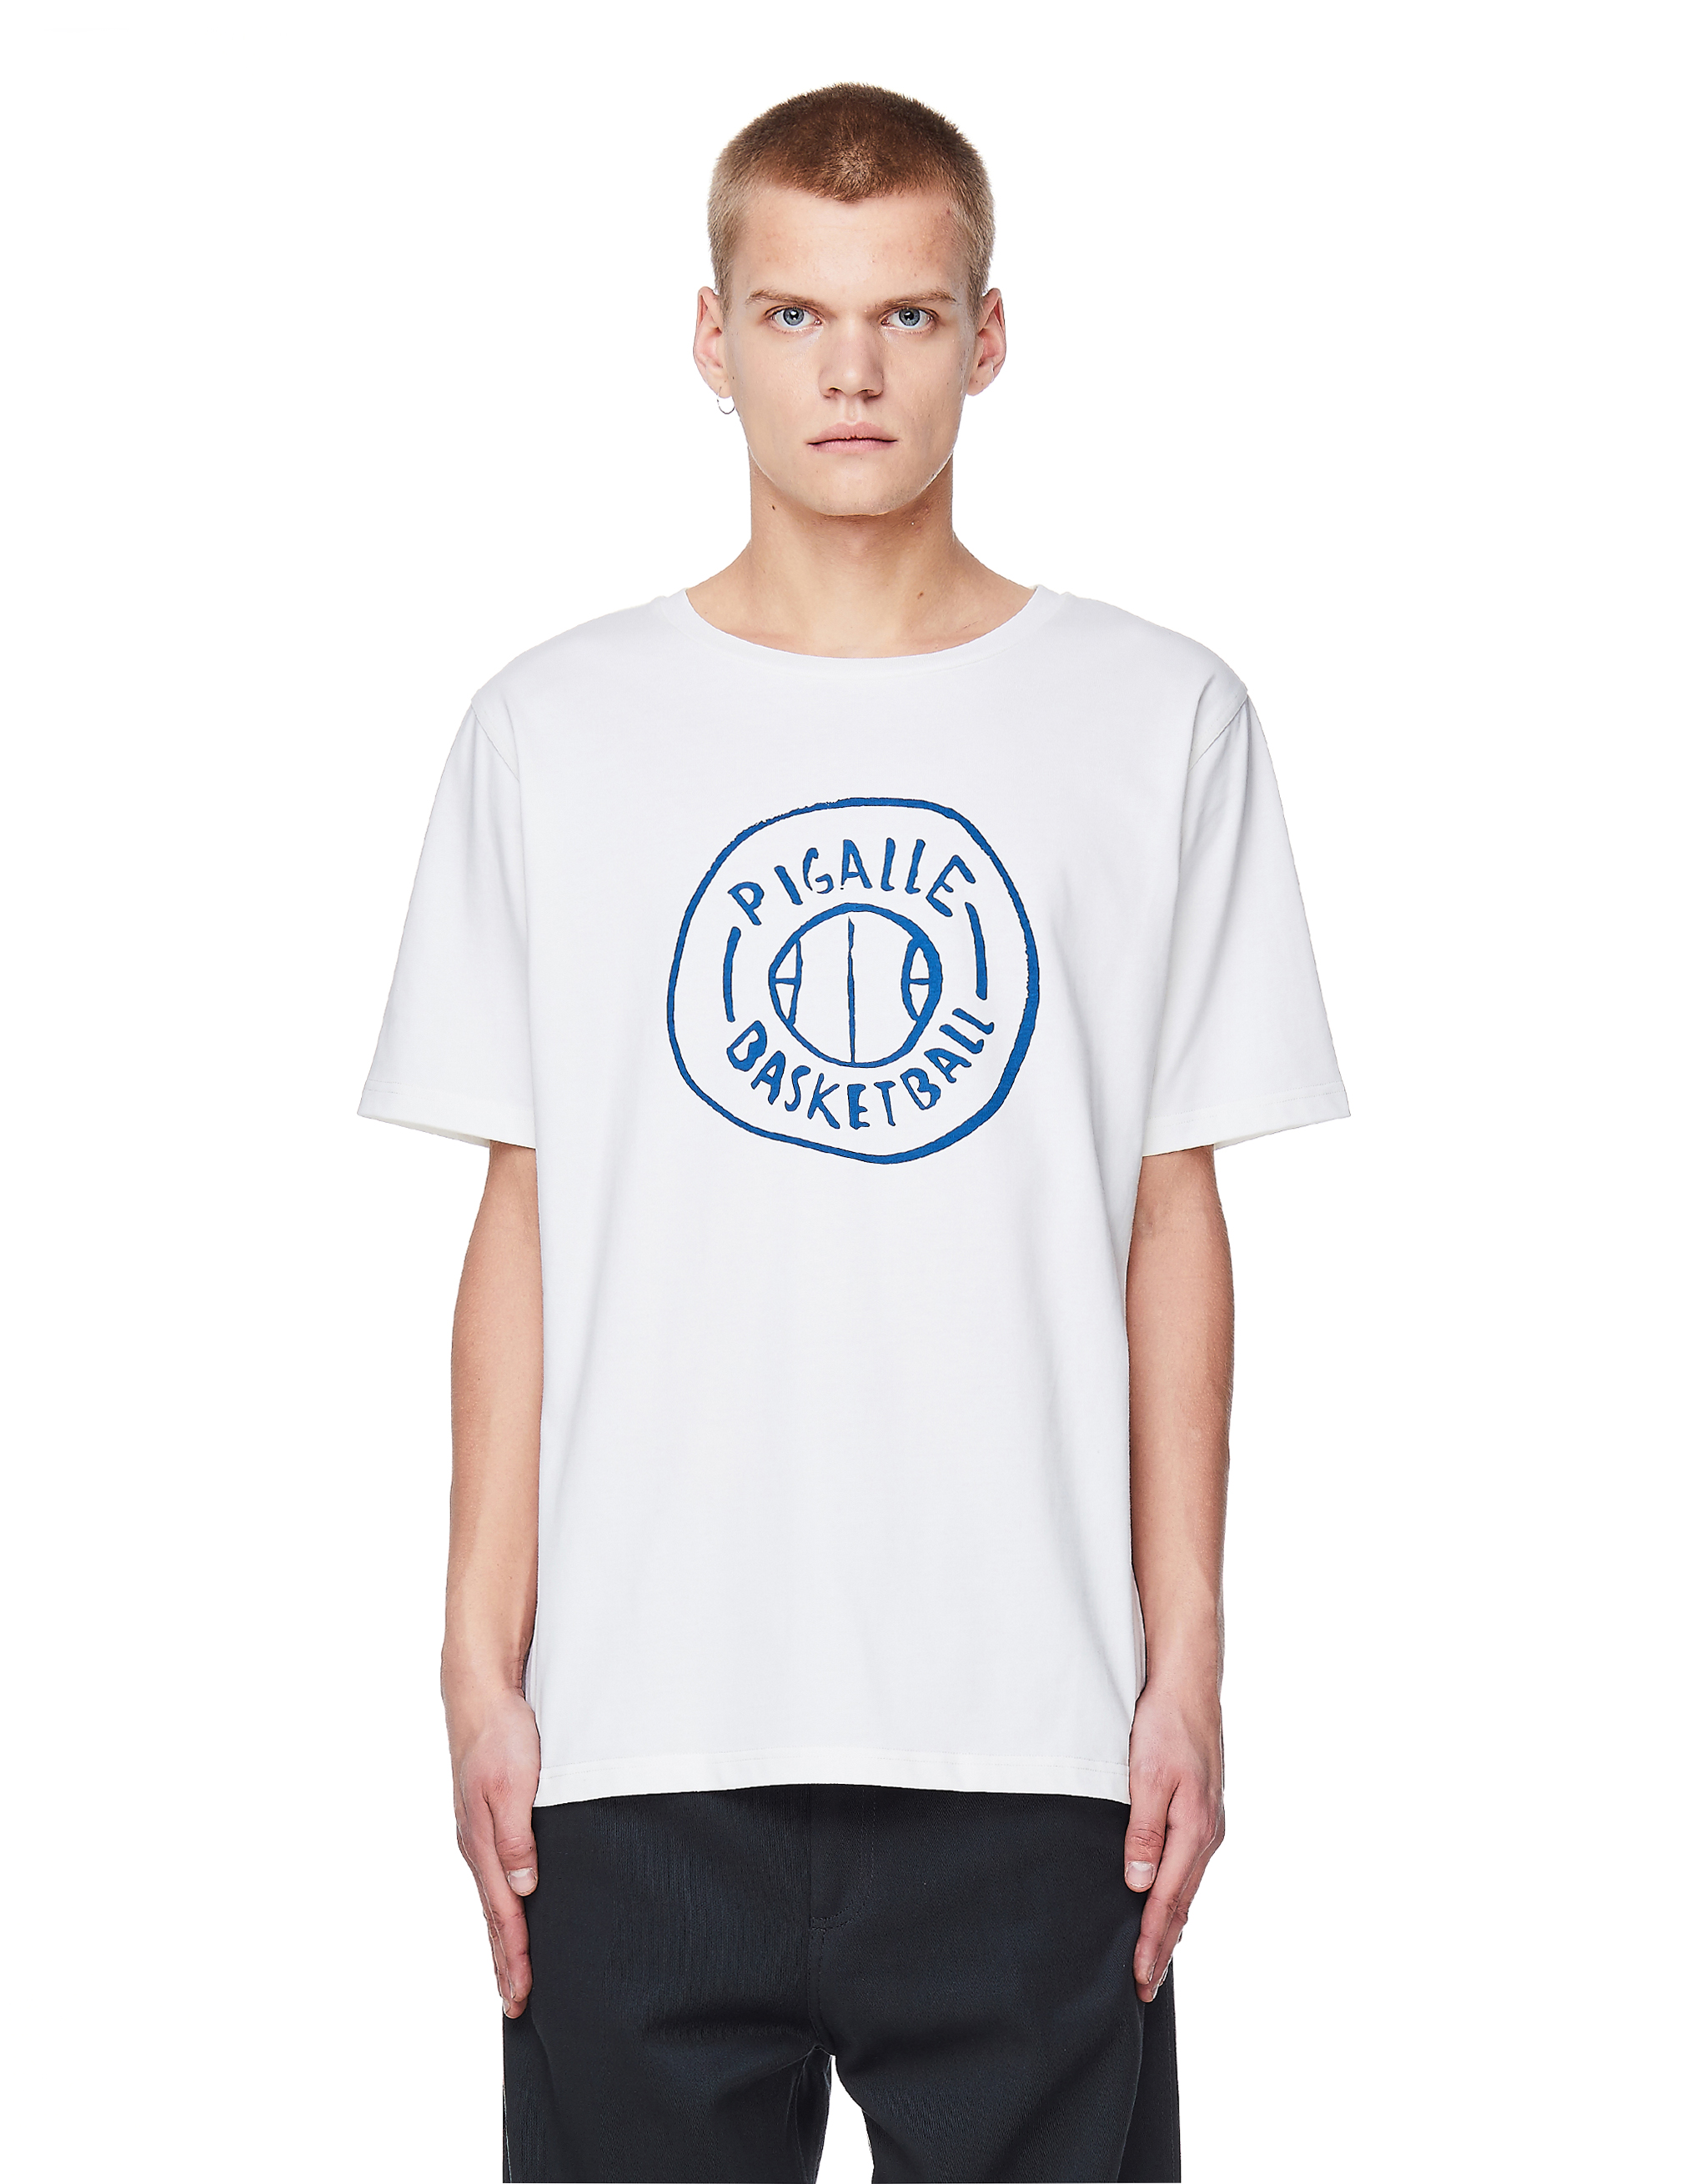 Pigalle White Cotton Basketball Printed T-Shirt